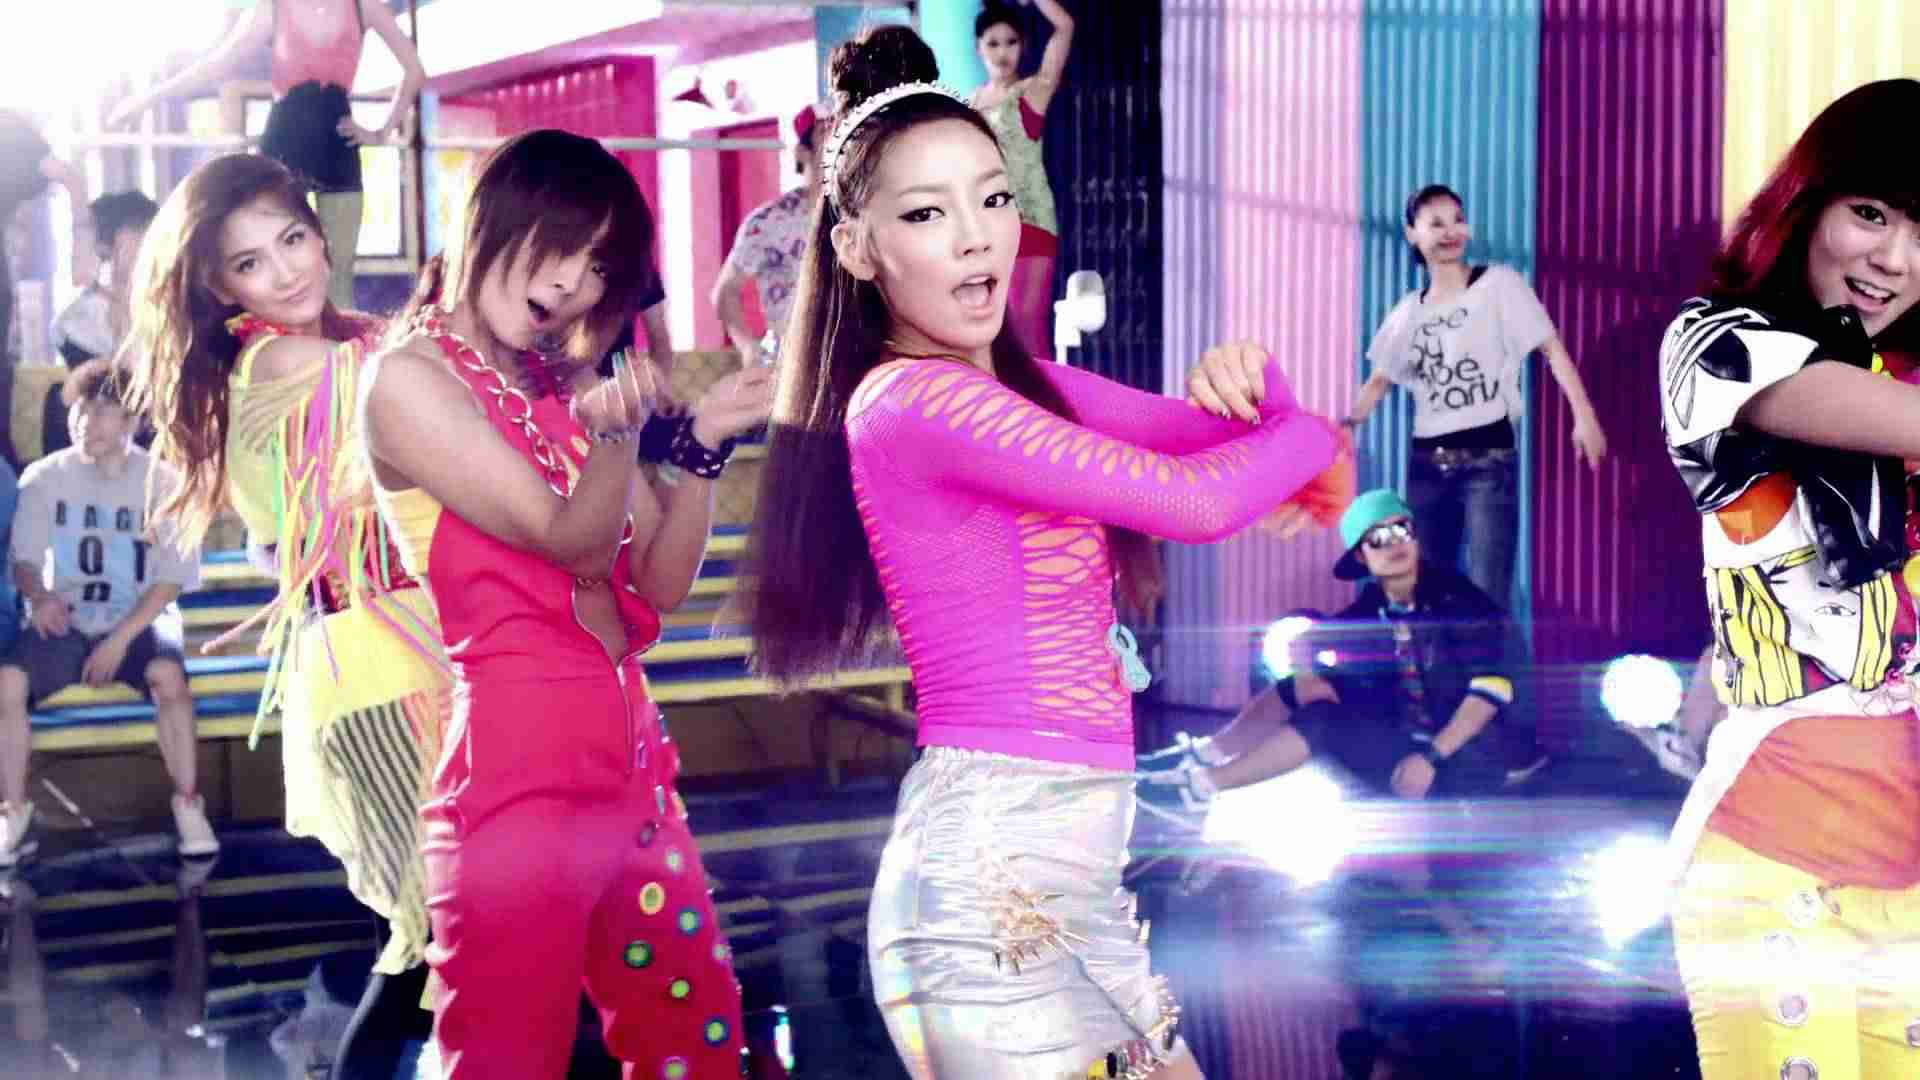 KARA - STEP M/V - YouTube